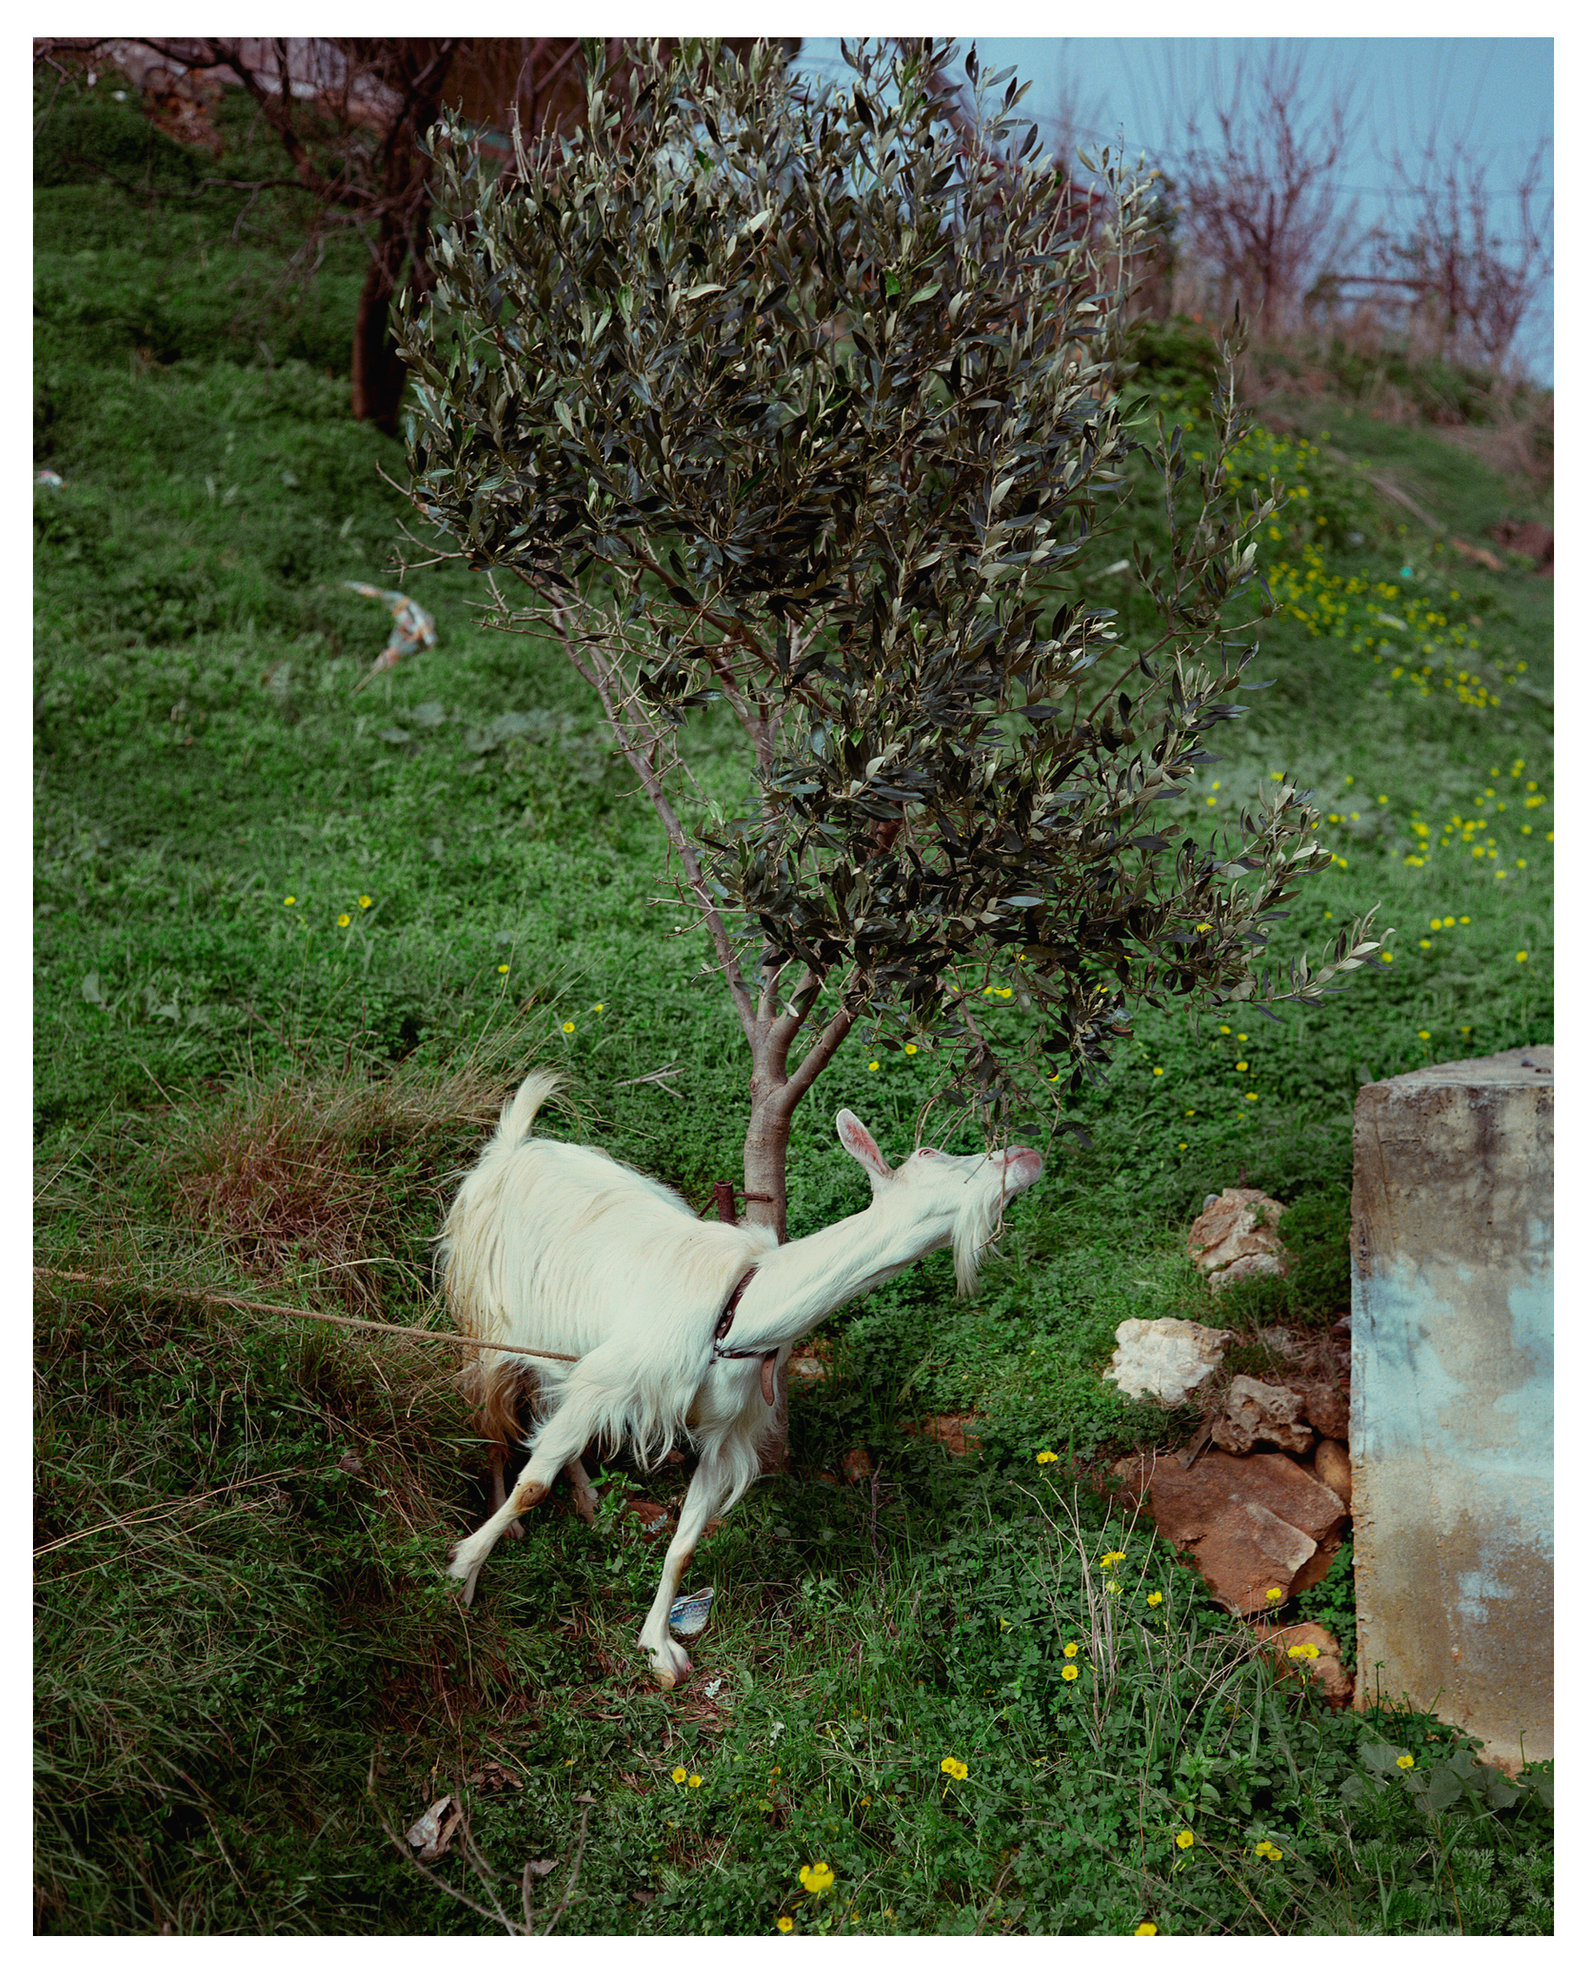 Animal Series Goat Greece.jpg